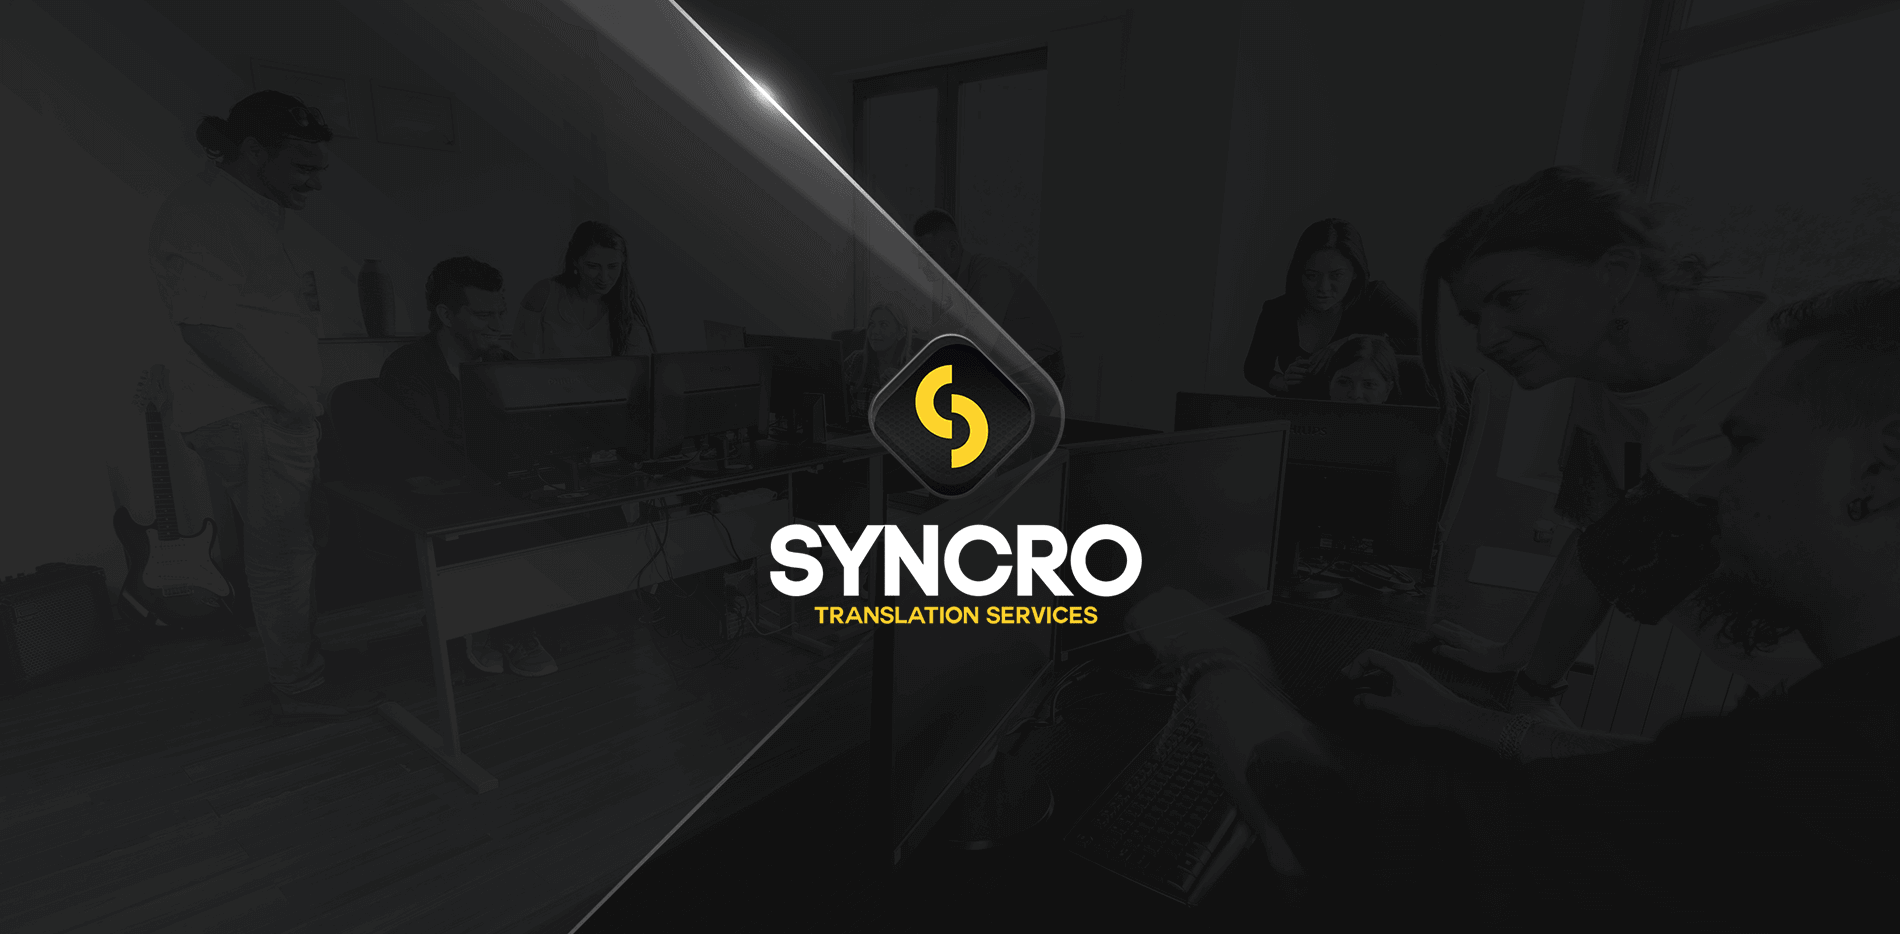 SyncroH